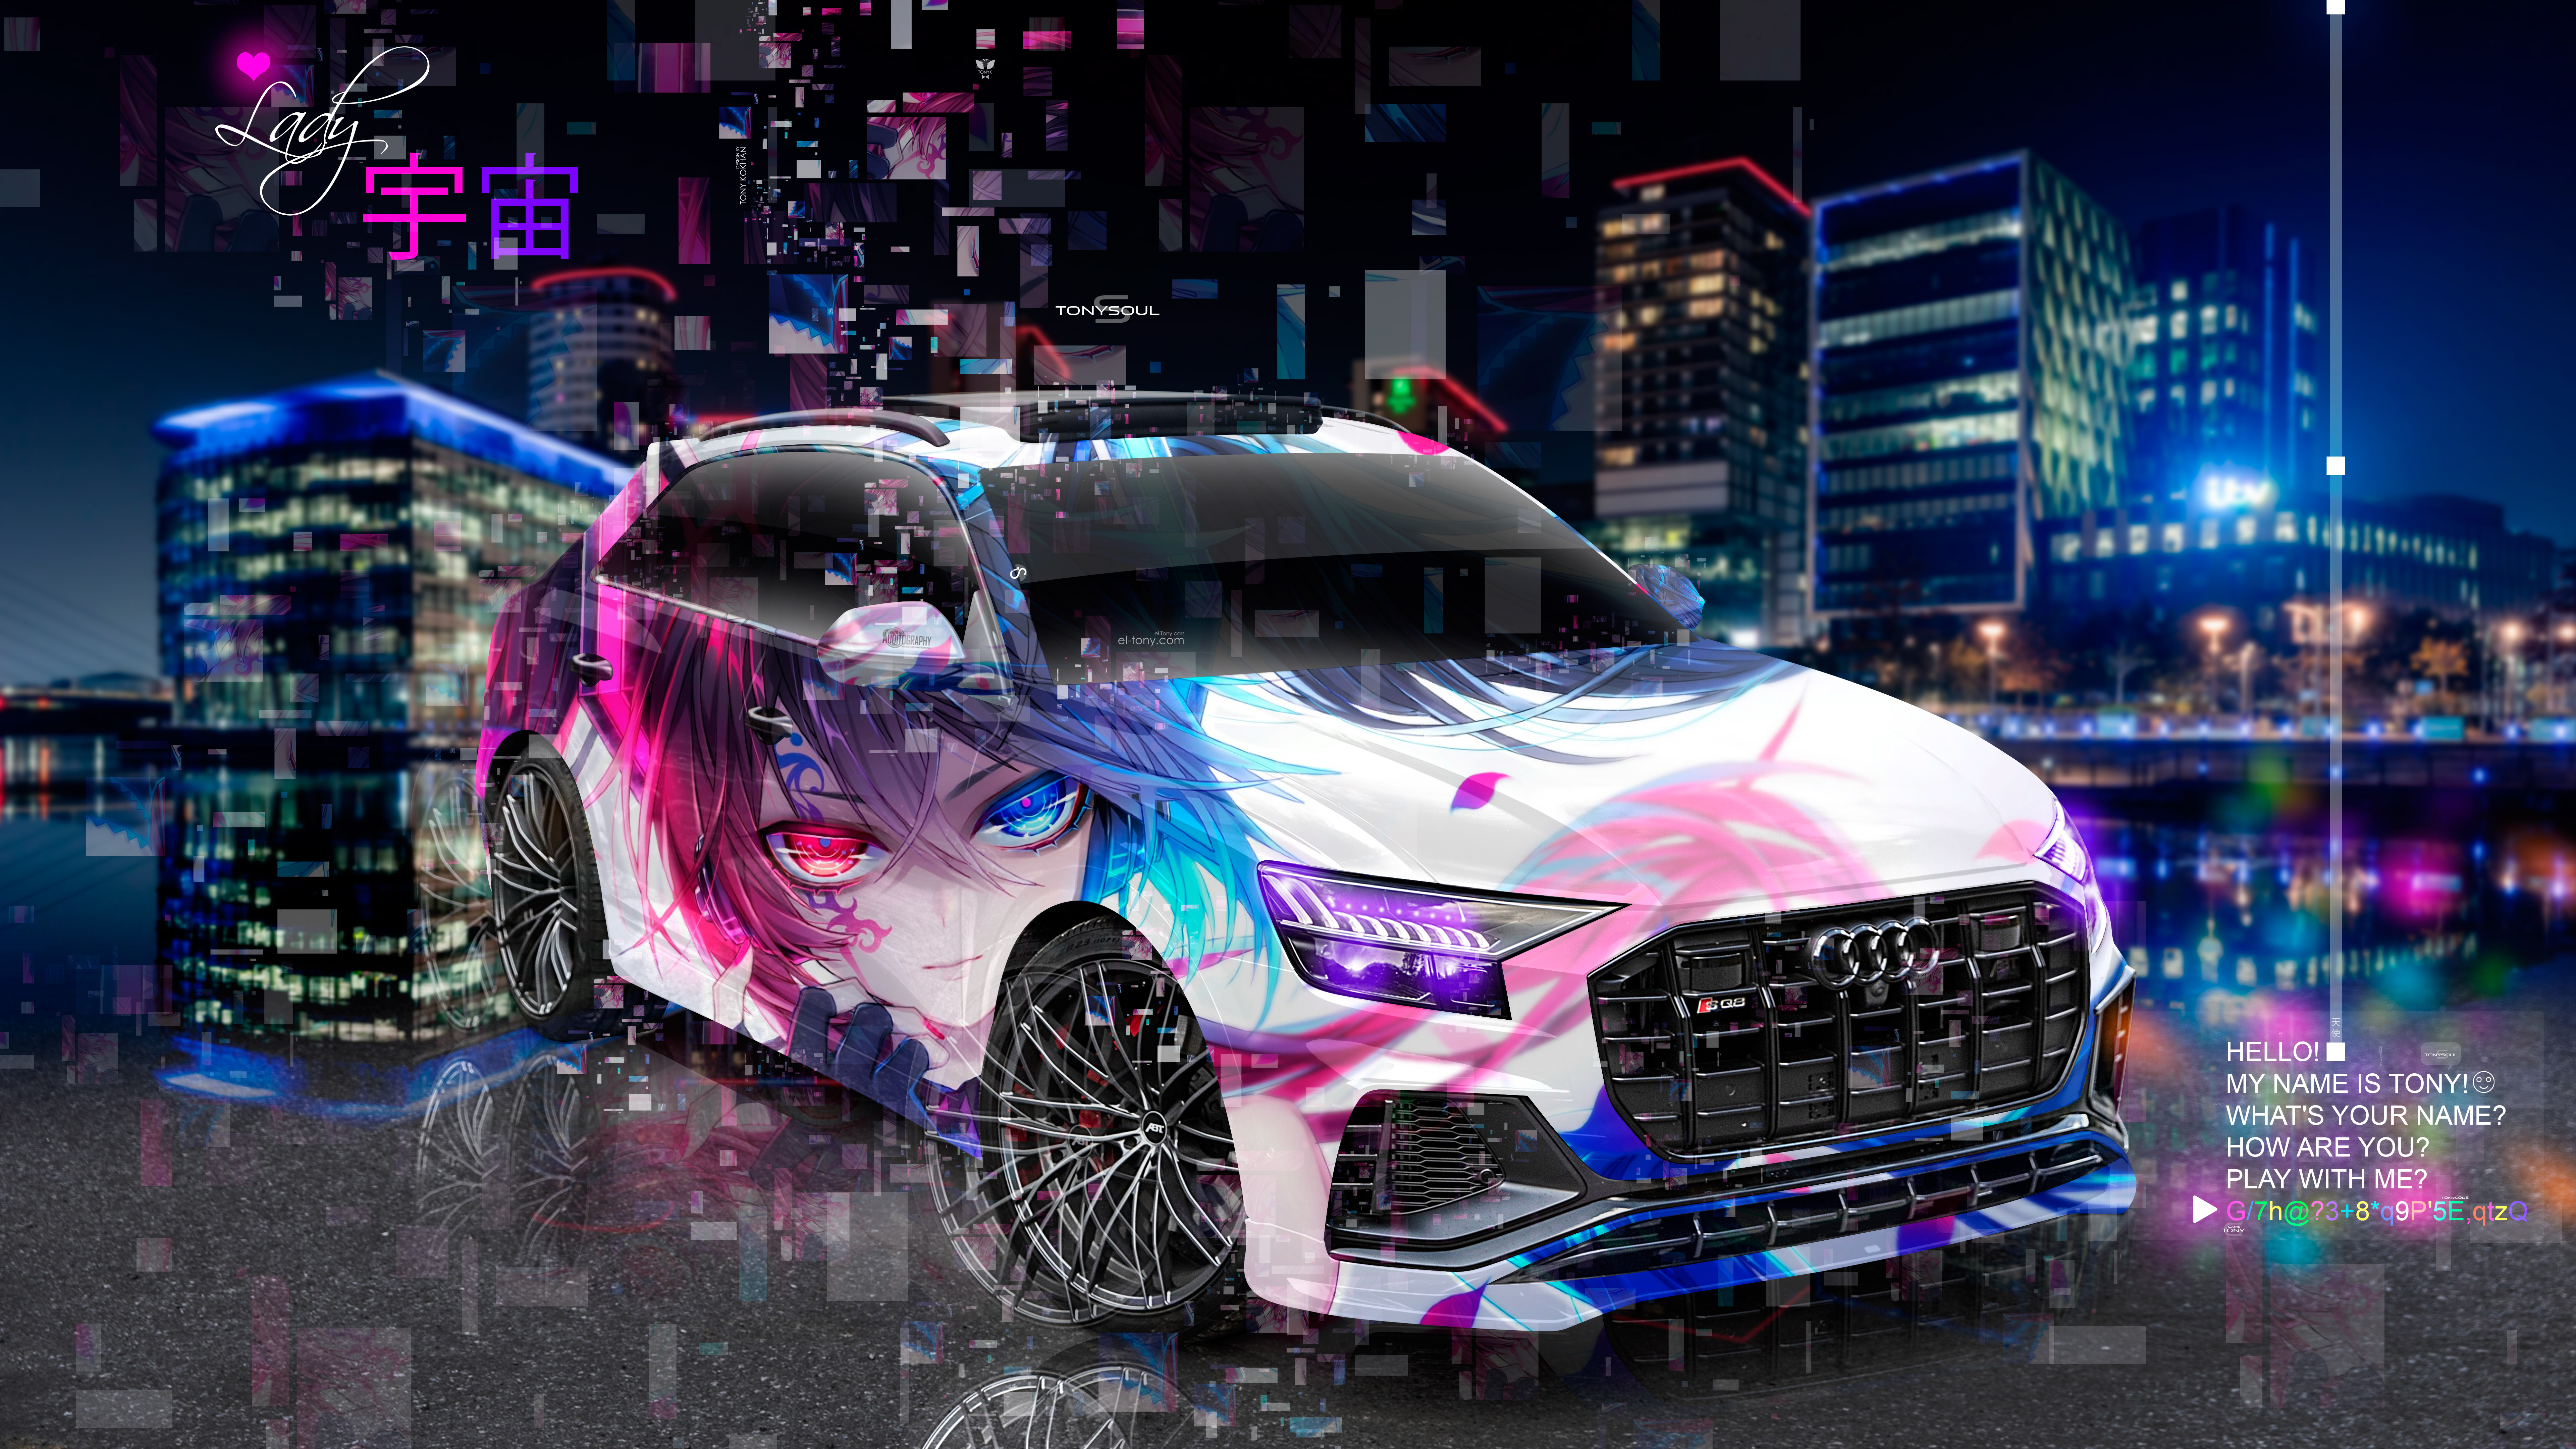 Audi-SQ8-Super-Anime-Girl-Aerography-TonySoul-TonyCode-Lady-Universe-Love-Heart-Night-City-Art-Car-2019-Multicolors-8K-Wallpapers-design-by-Tony-Kokhan-www.el-tony.com-image